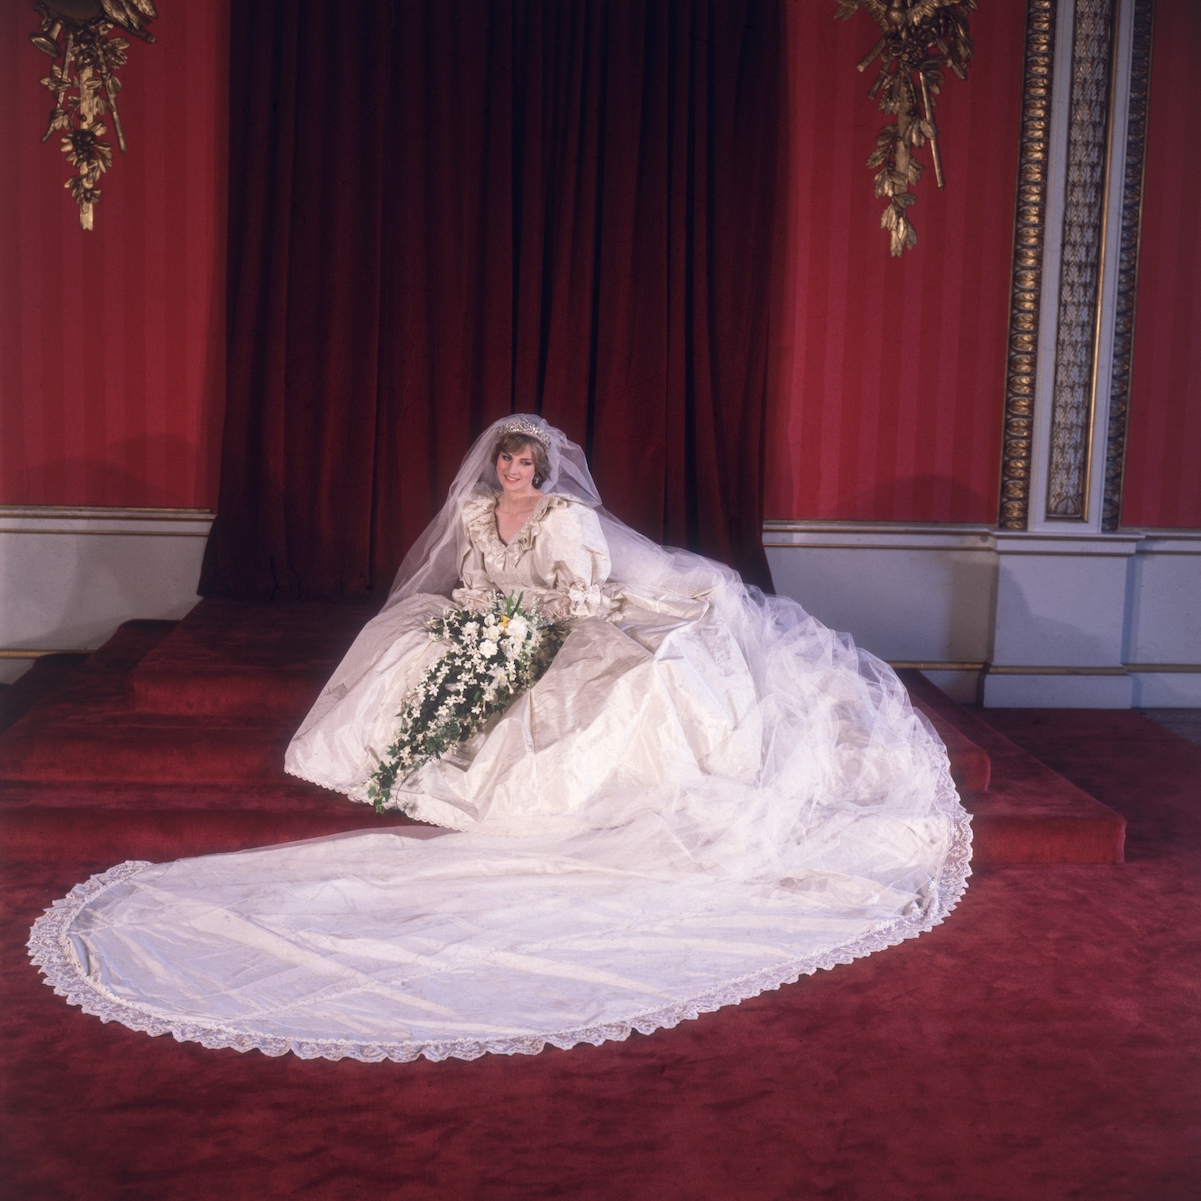 Princess Diana poses for an official portrait after her royal wedding